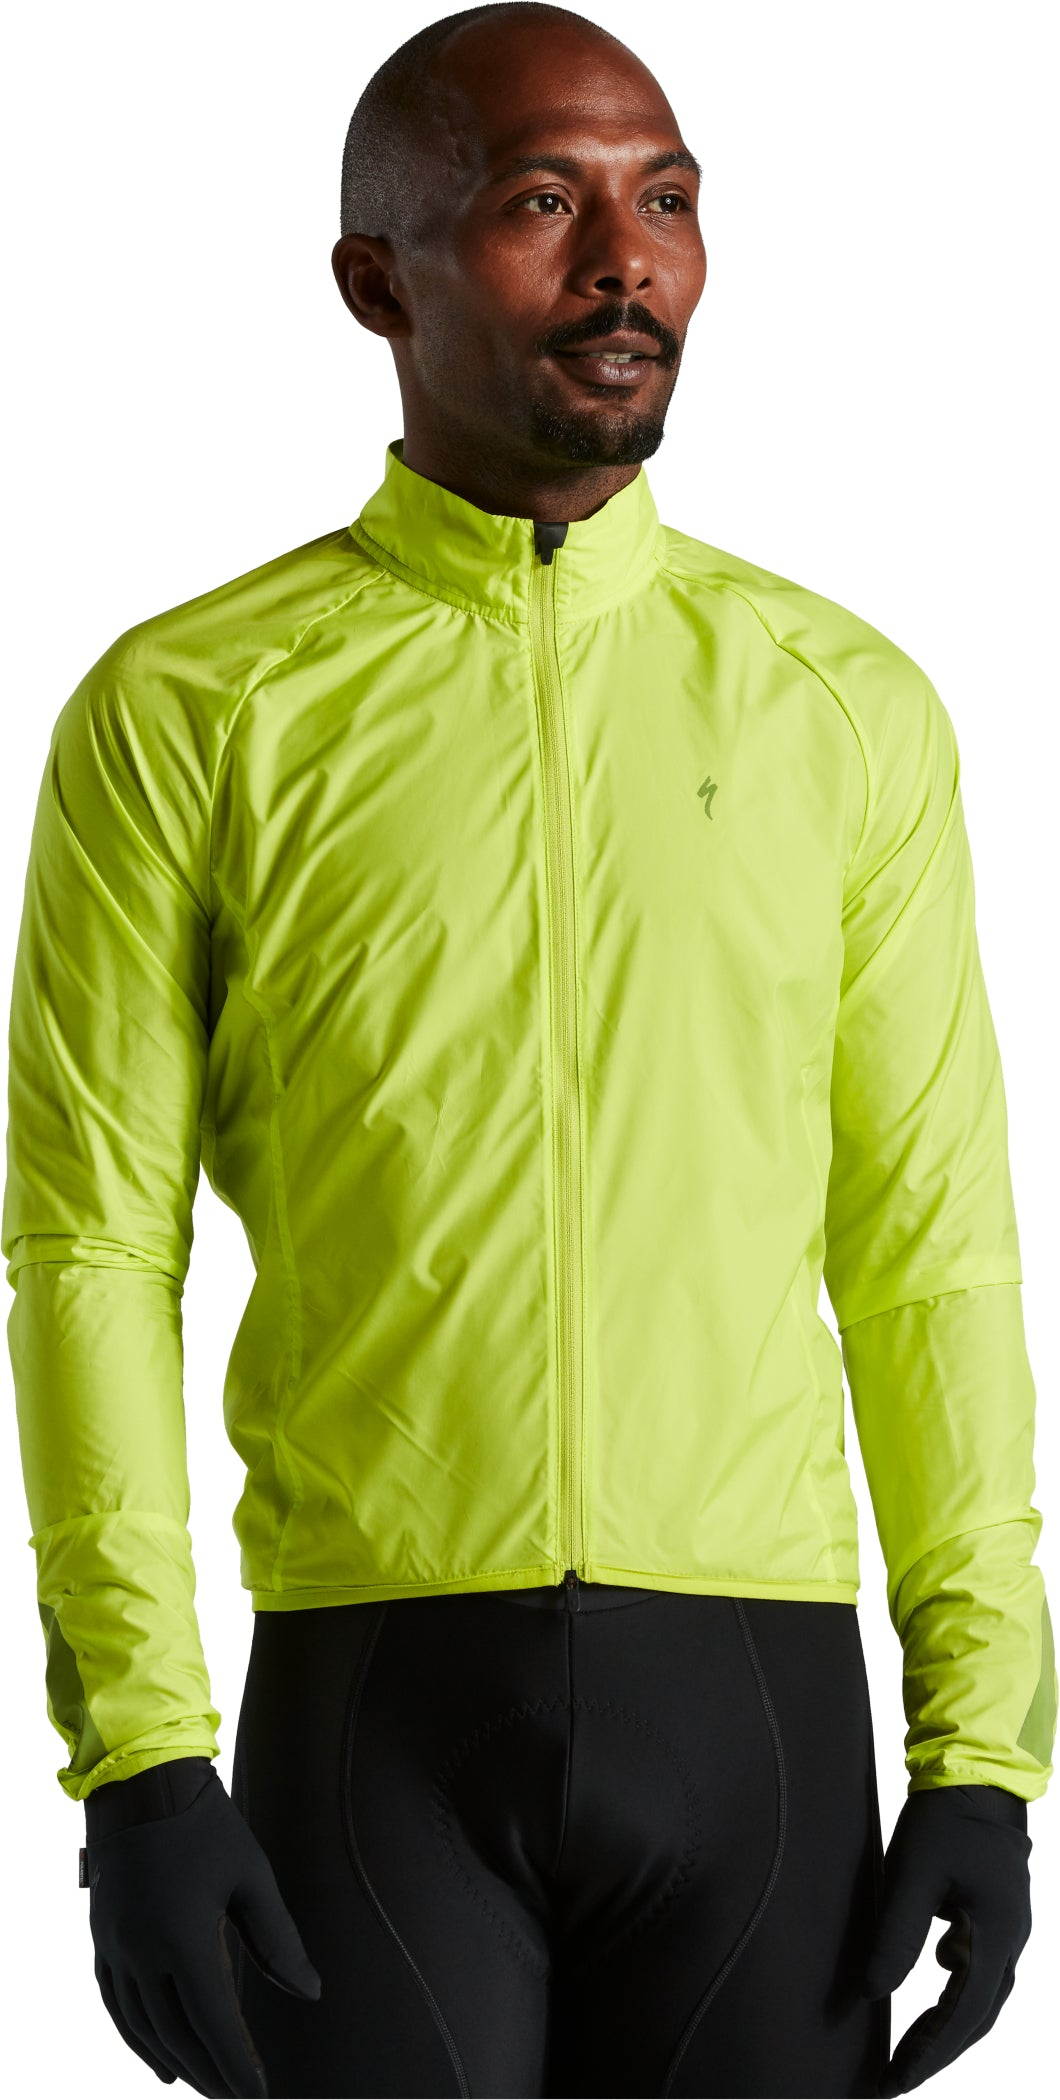 Men's HyprViz Race-Series Wind Jacket